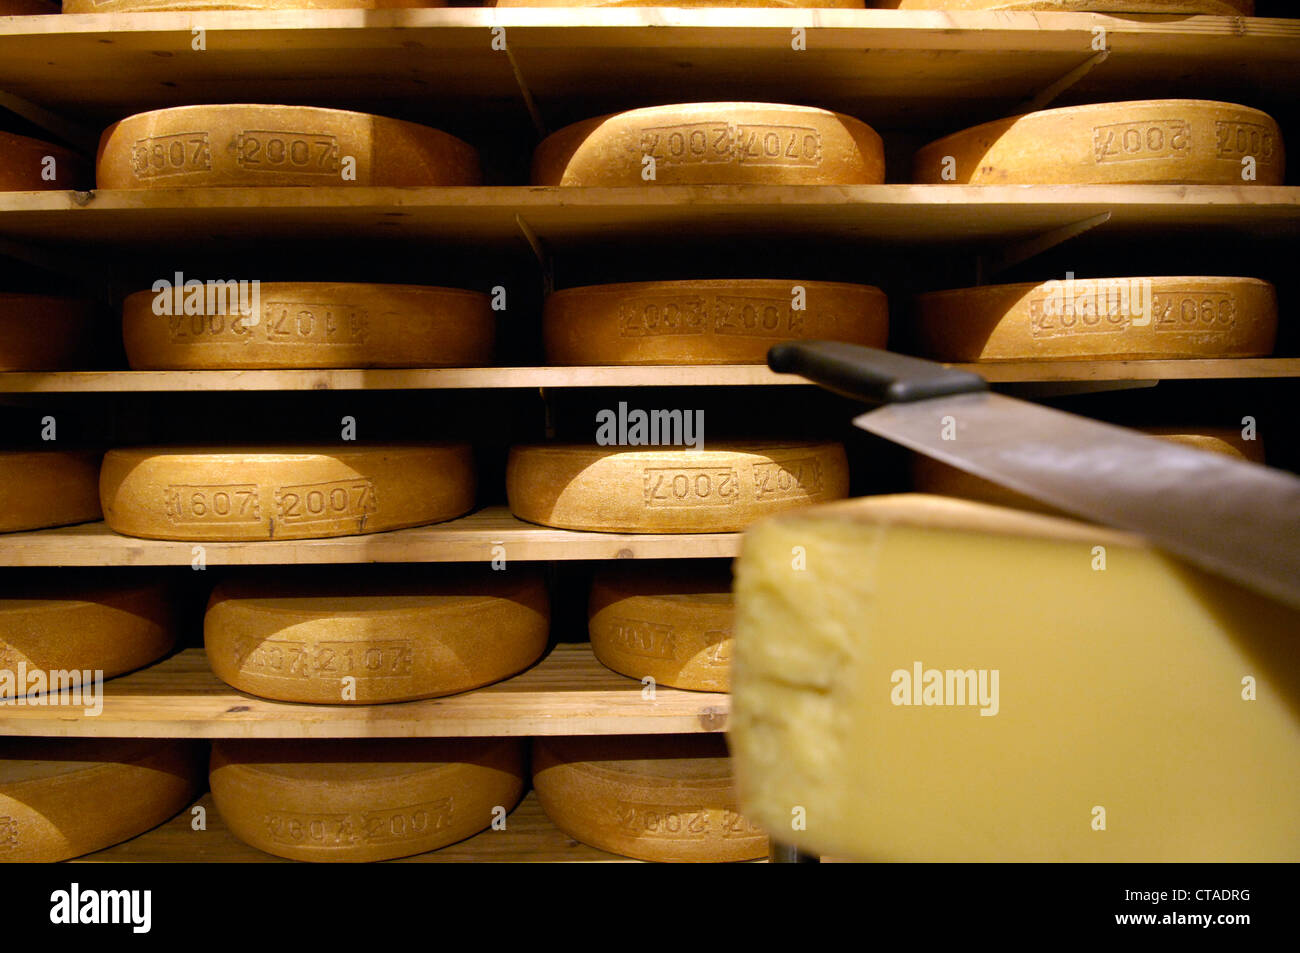 Cheese loaves, Alpine cheese in farmstead, South Tyrol, Trentino-Alto Adige, Italy - Stock Image